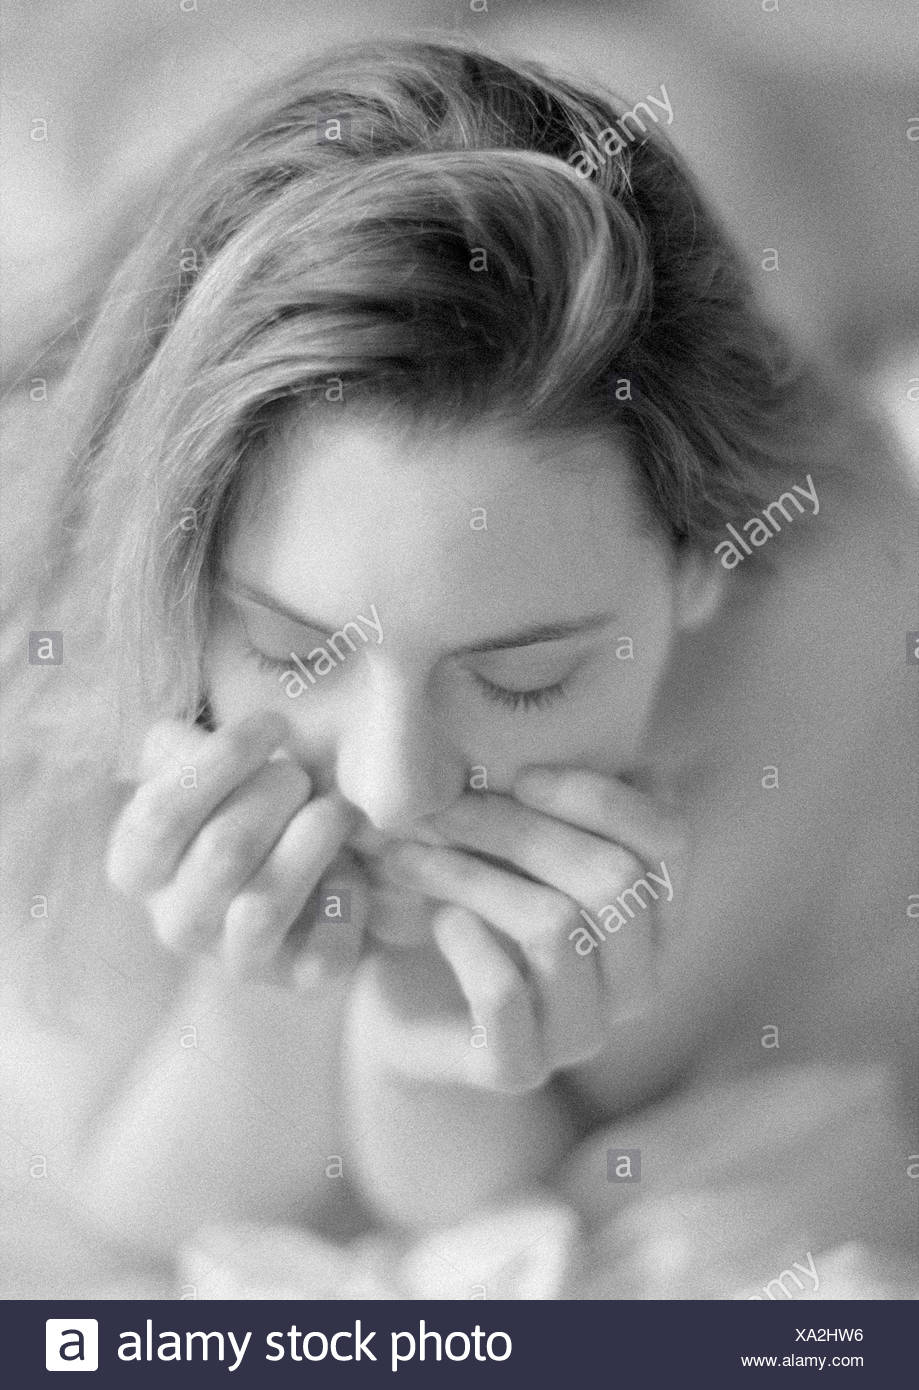 Woman lying on bed holding head in hands, portrait, close-up, black and white - Stock Image